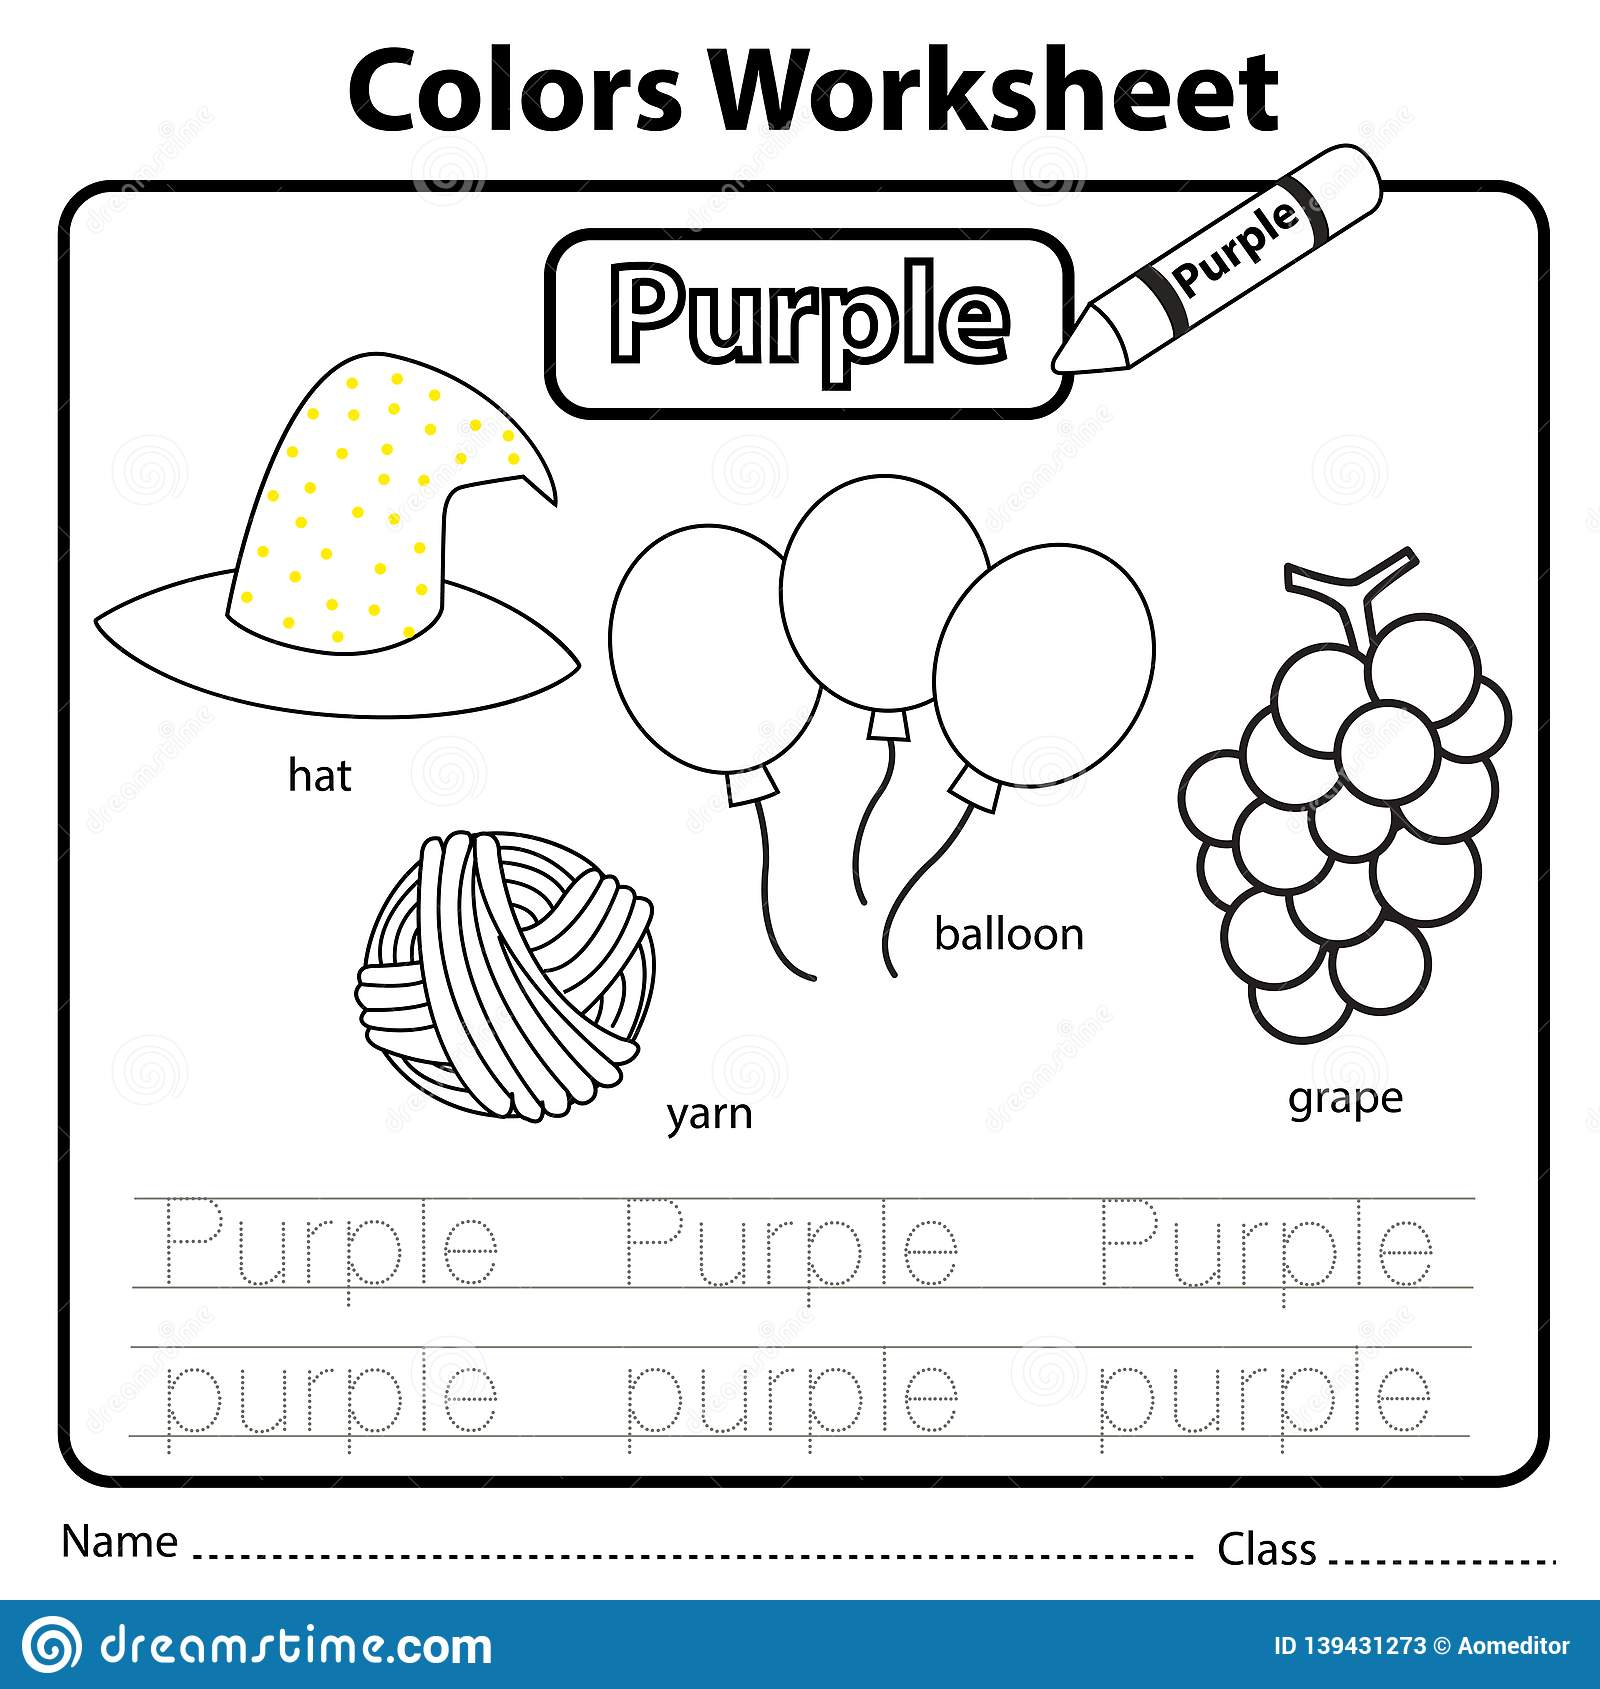 Illustrator Of Color Worksheet Purple Stock Vector